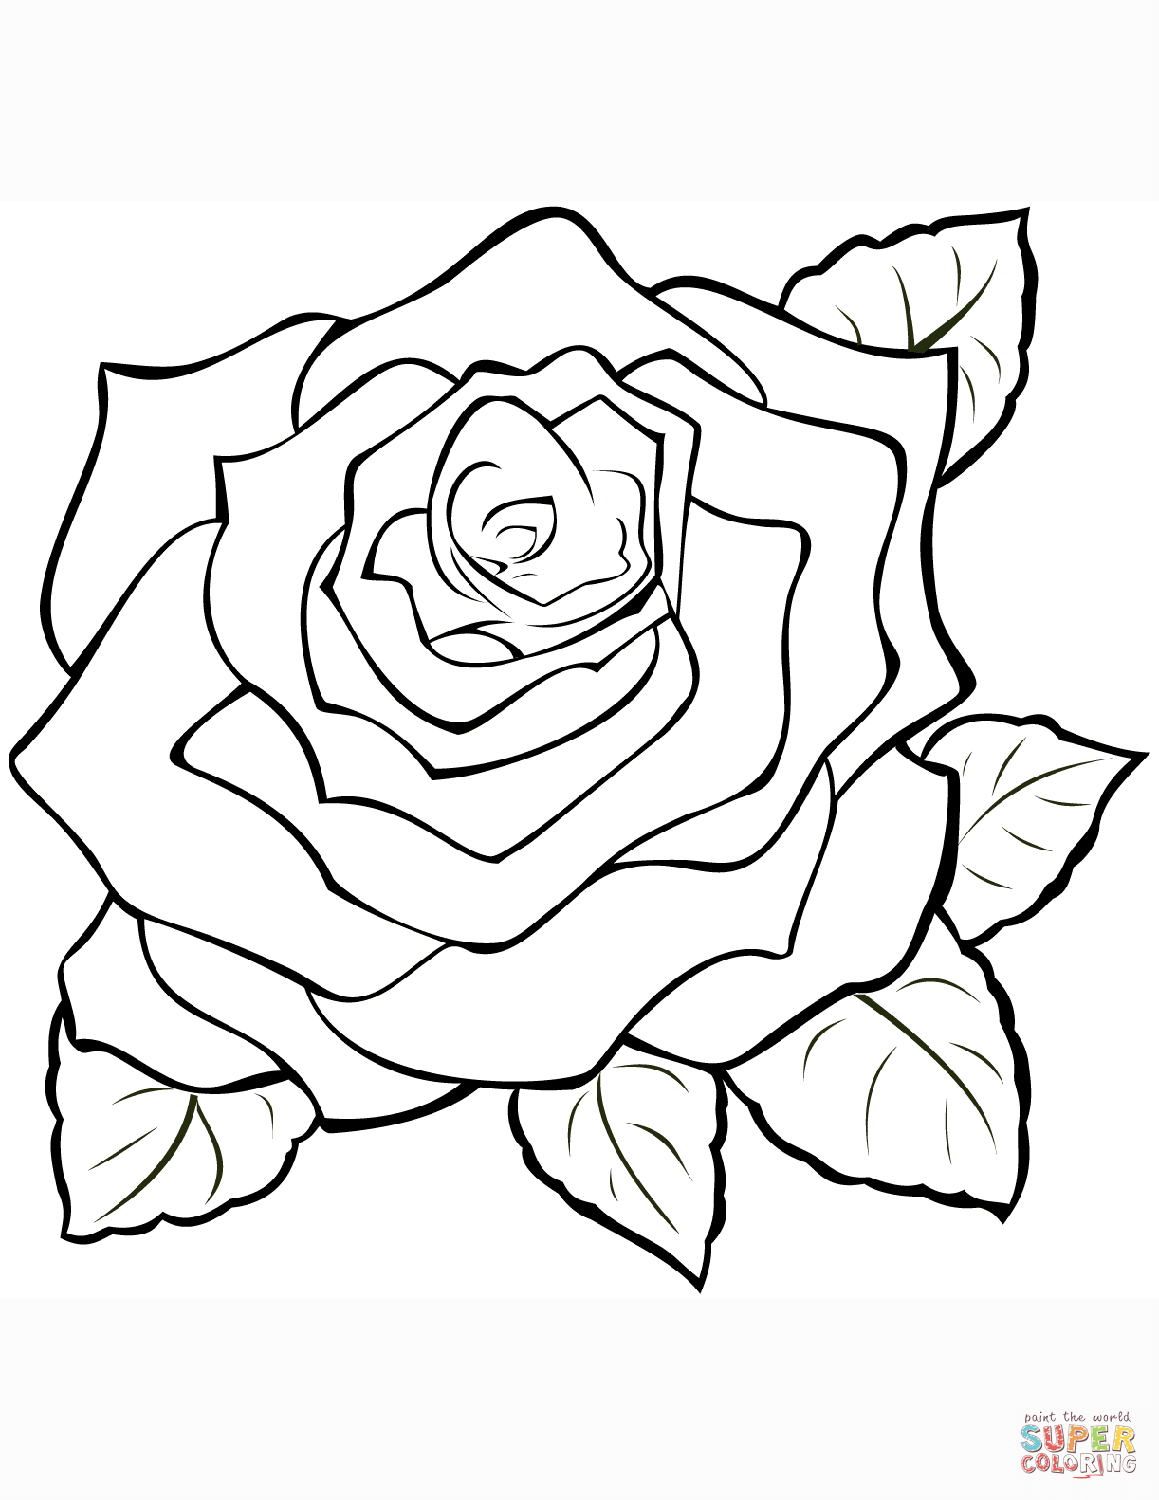 coloring roses flower coloring pages coloring roses